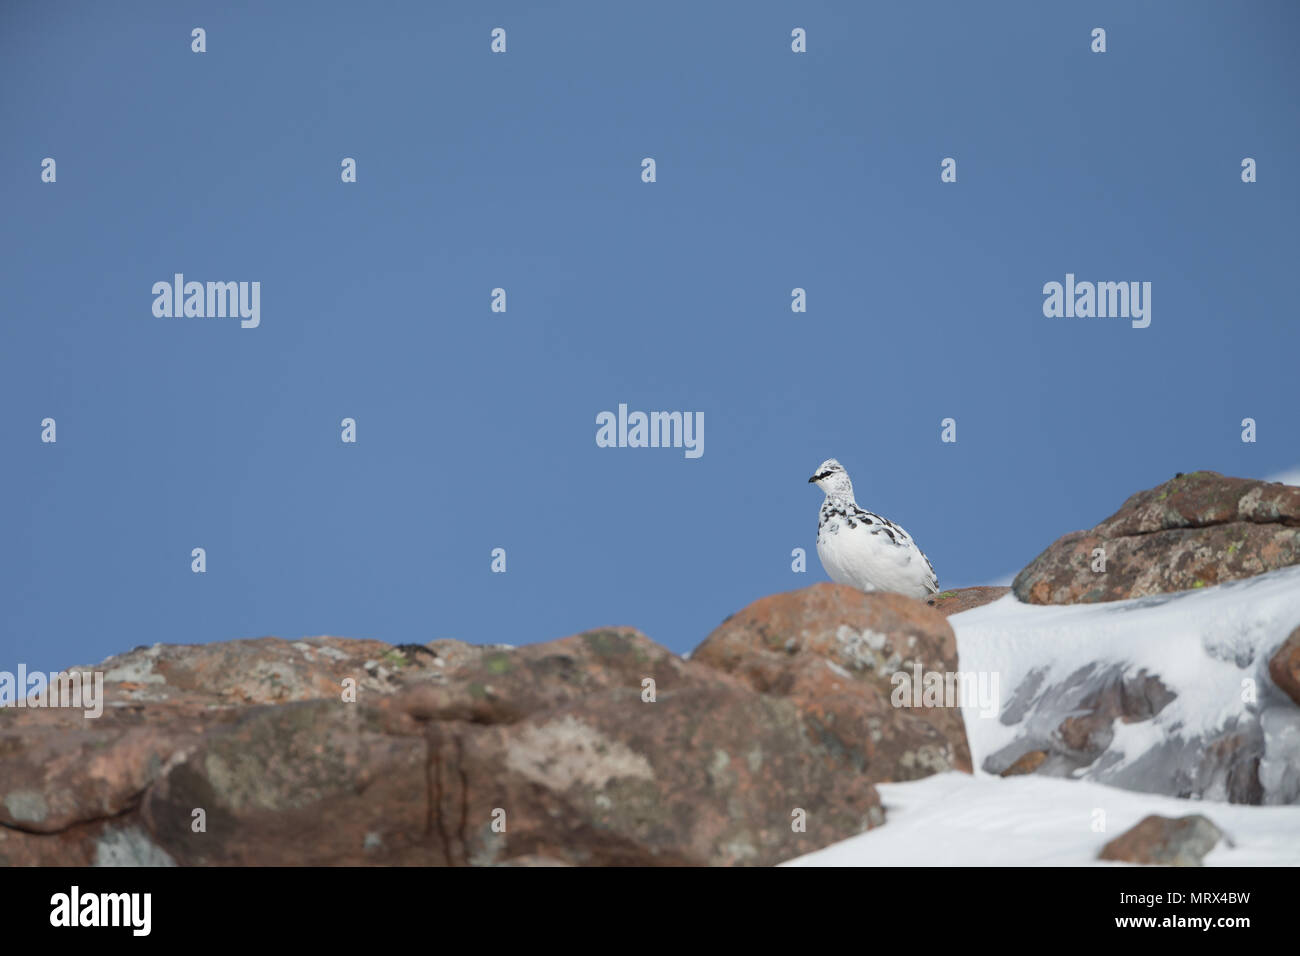 Ptarmigan (Lagopus mutus) perched, walking, calling and feeding amongst heather and rocks, in the Scottish Highlands. - Stock Image